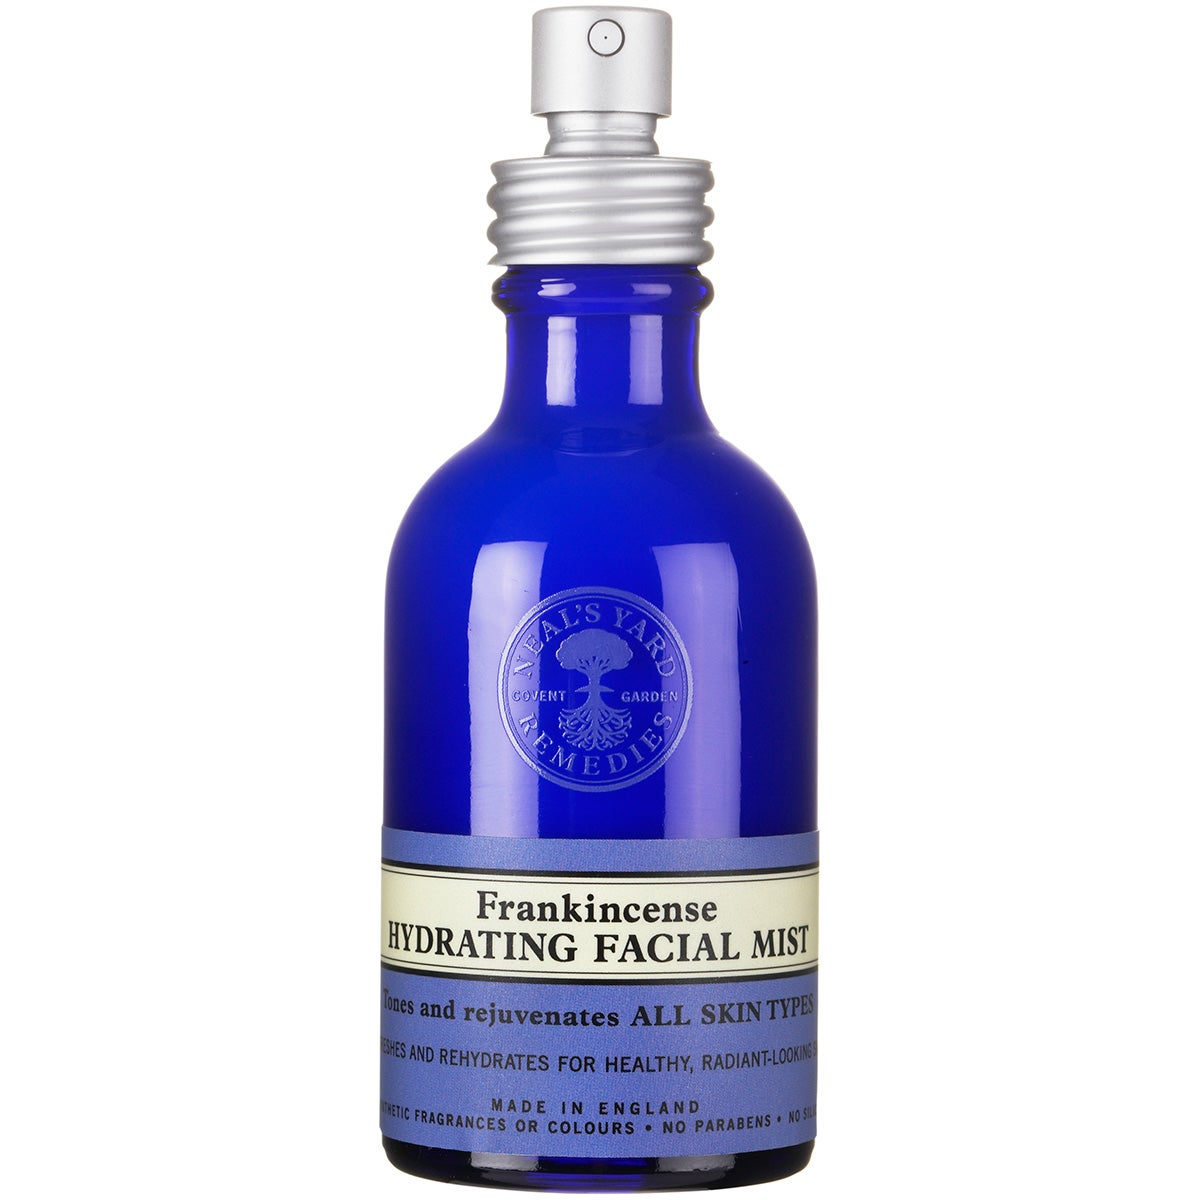 Neal's Yard Remedies Frankincense Hydrating Facial Mist